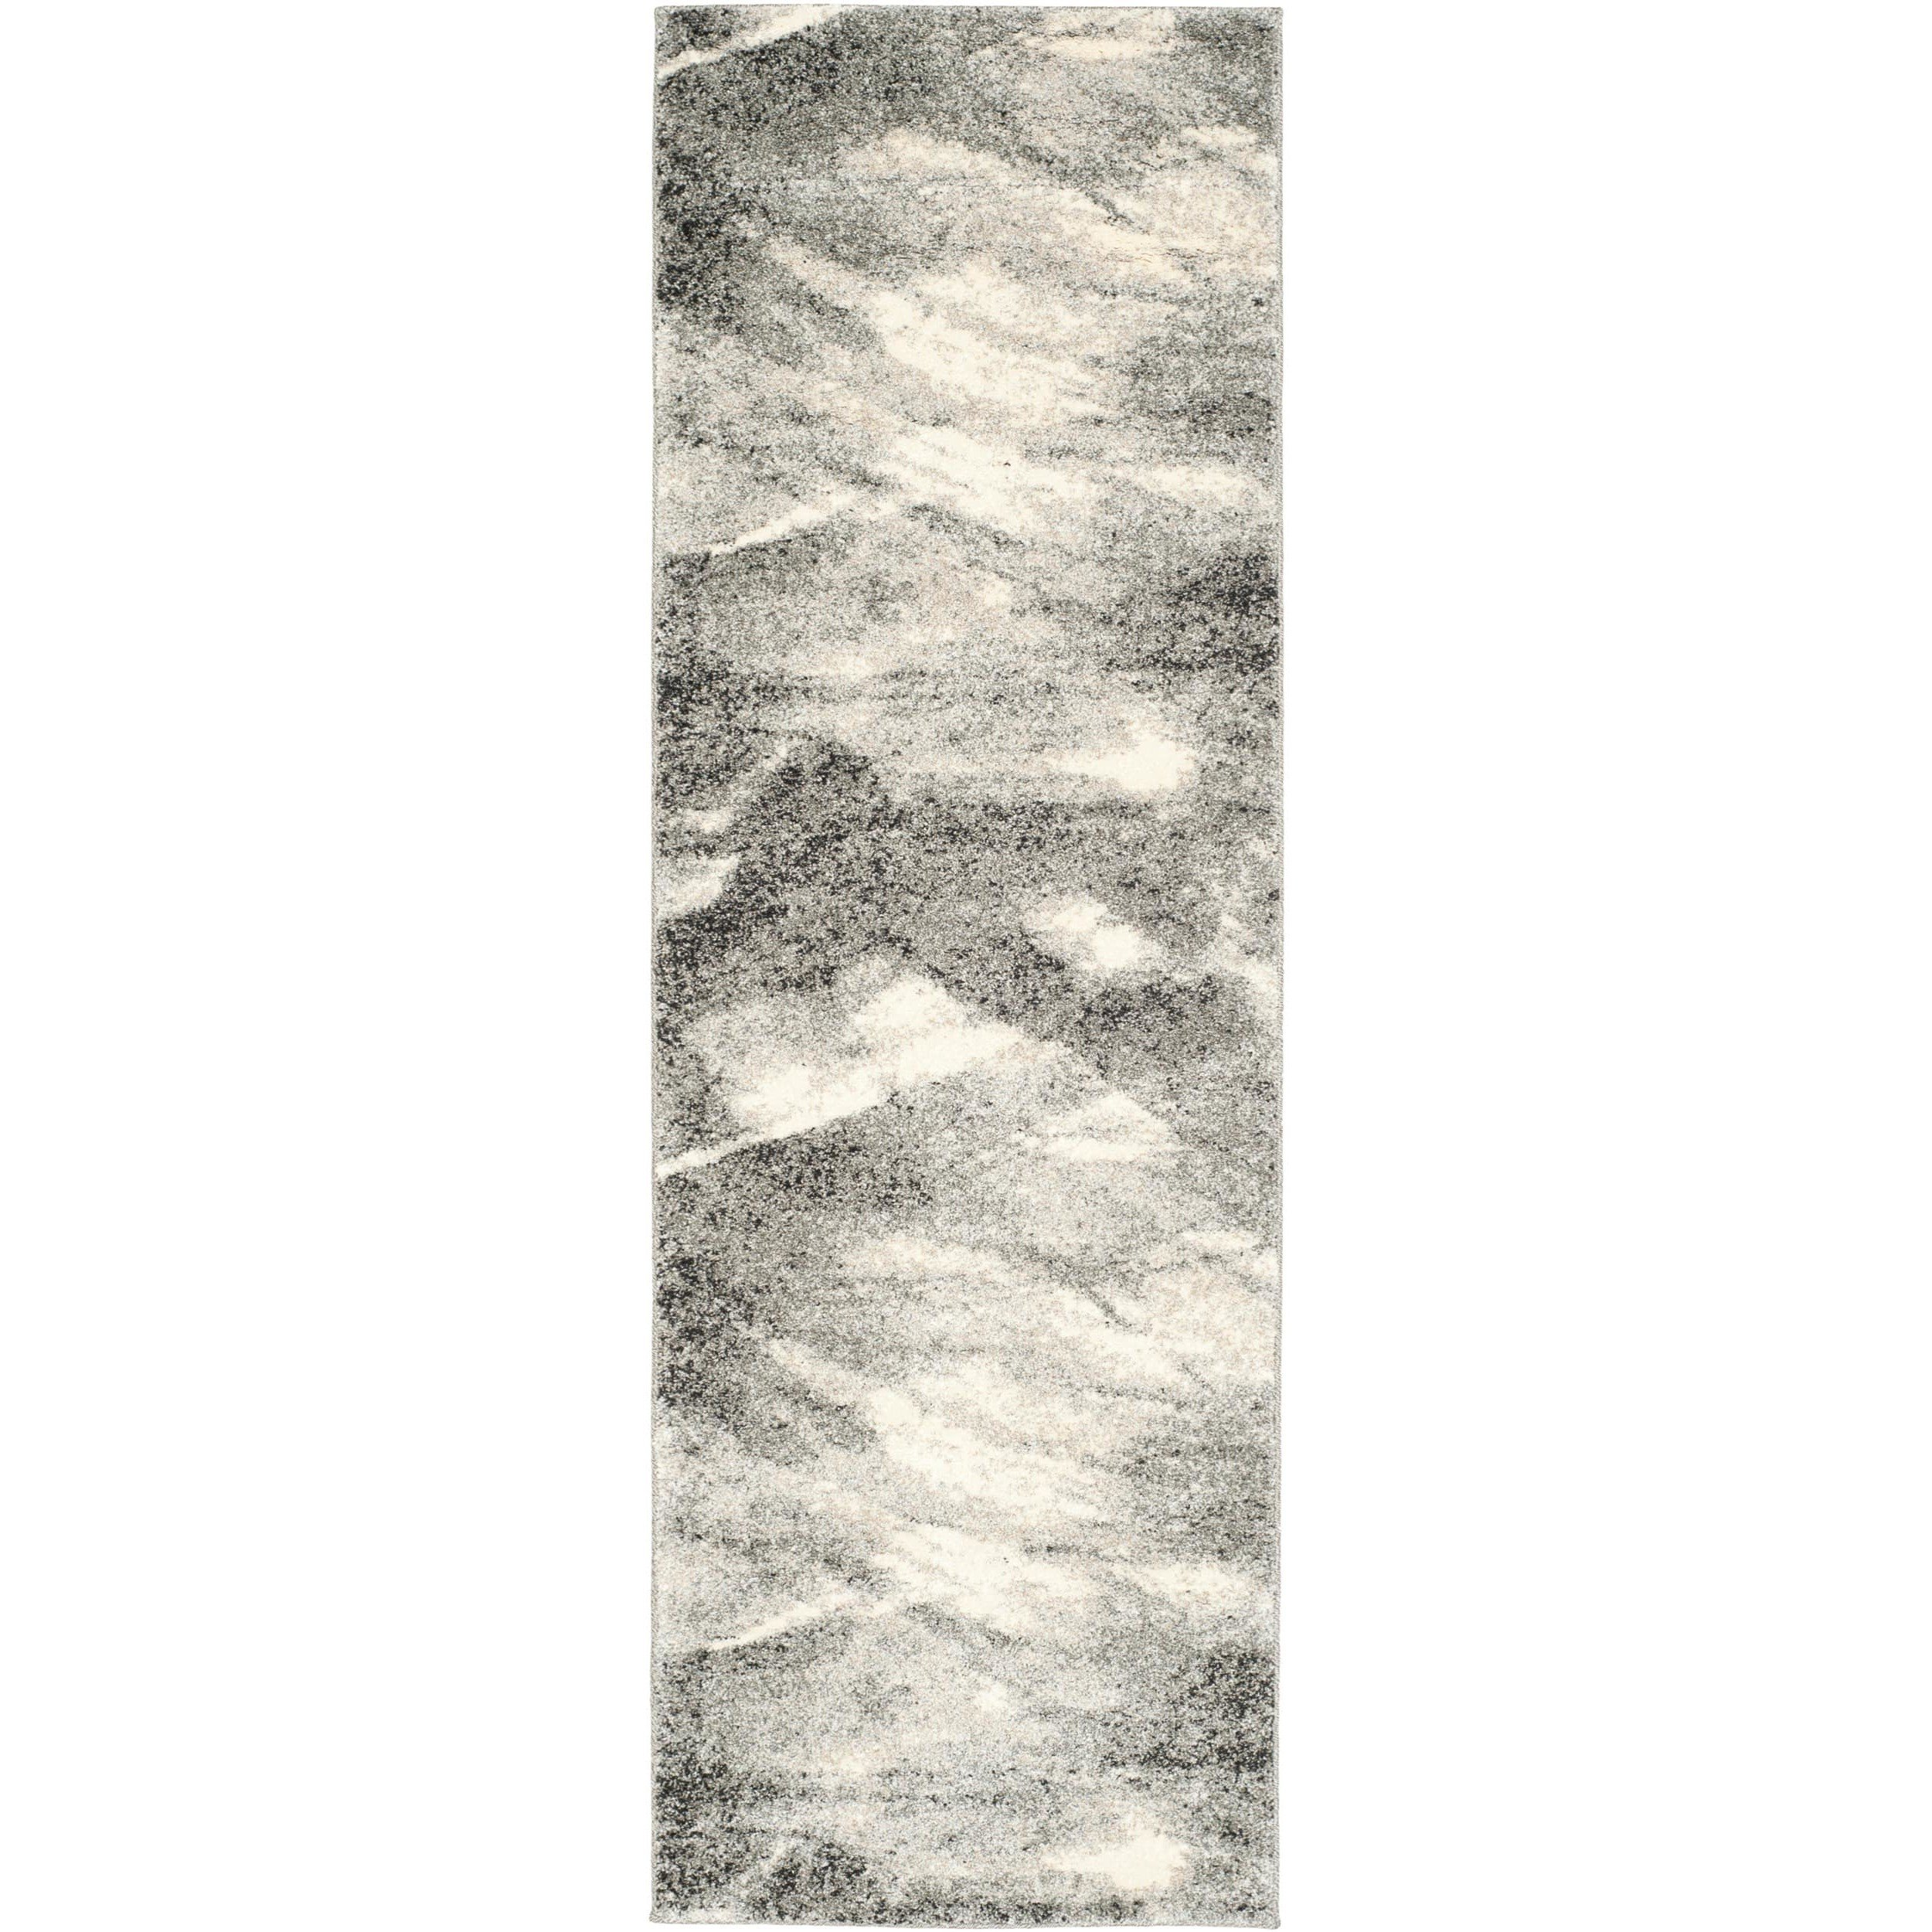 un 2'3 x 9' Vintage Novelty Mid Century Plush Motif Patterned Abstract Grey Ivory Multi Color Runner Rug, Soft Polypropylene Fancy Country Northern, Rectangle Living Room Kitchen Accent Carpet